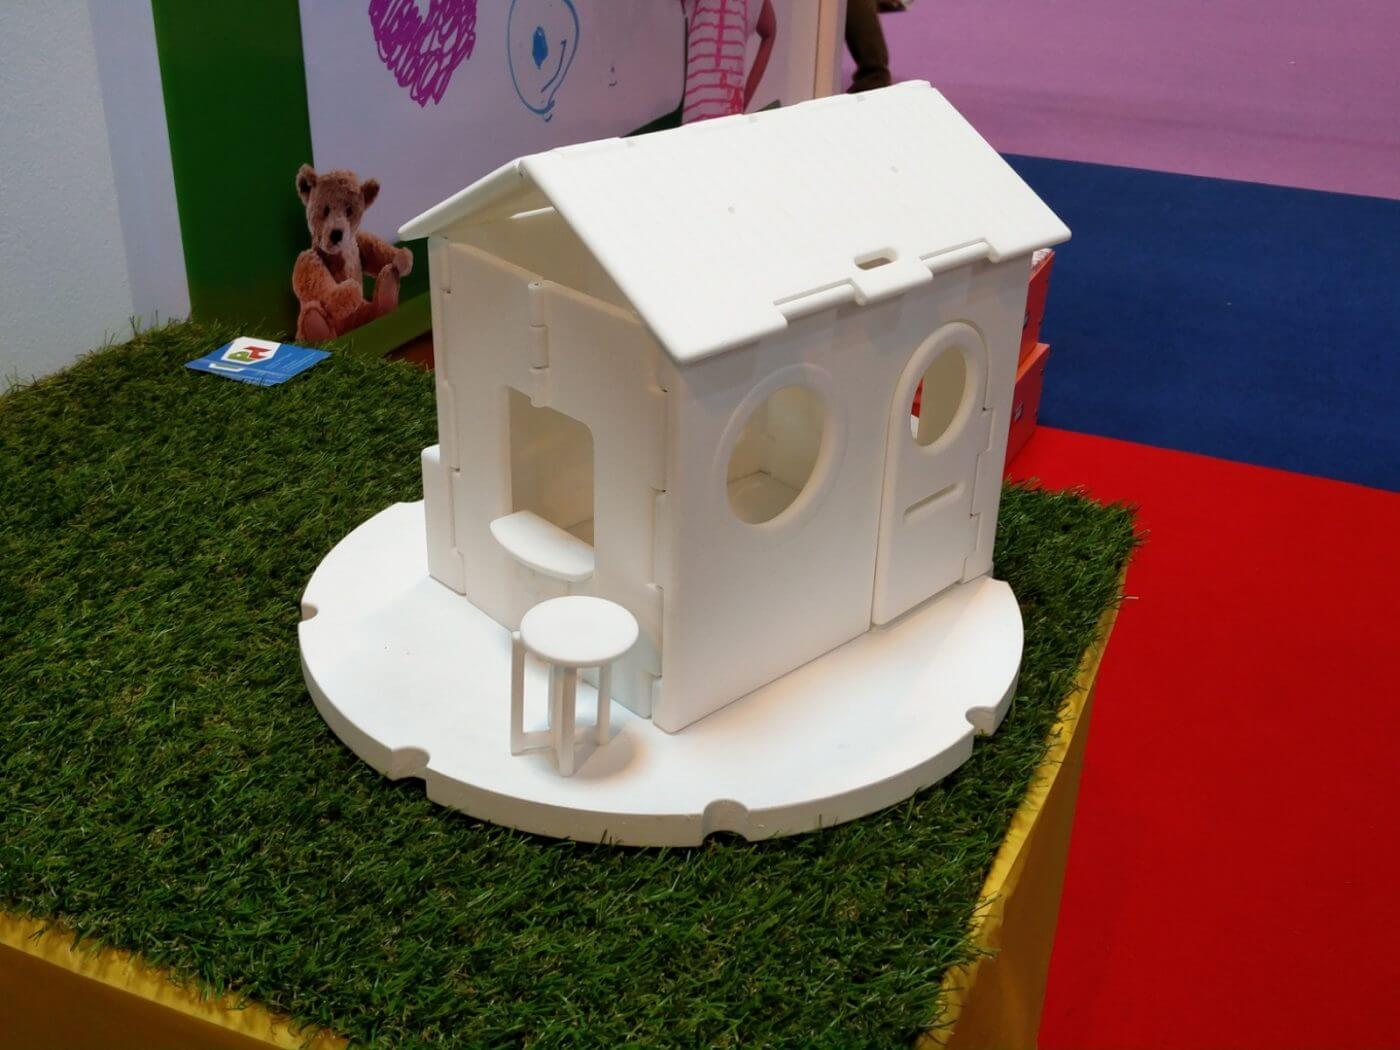 Folding Playhouse Prototype